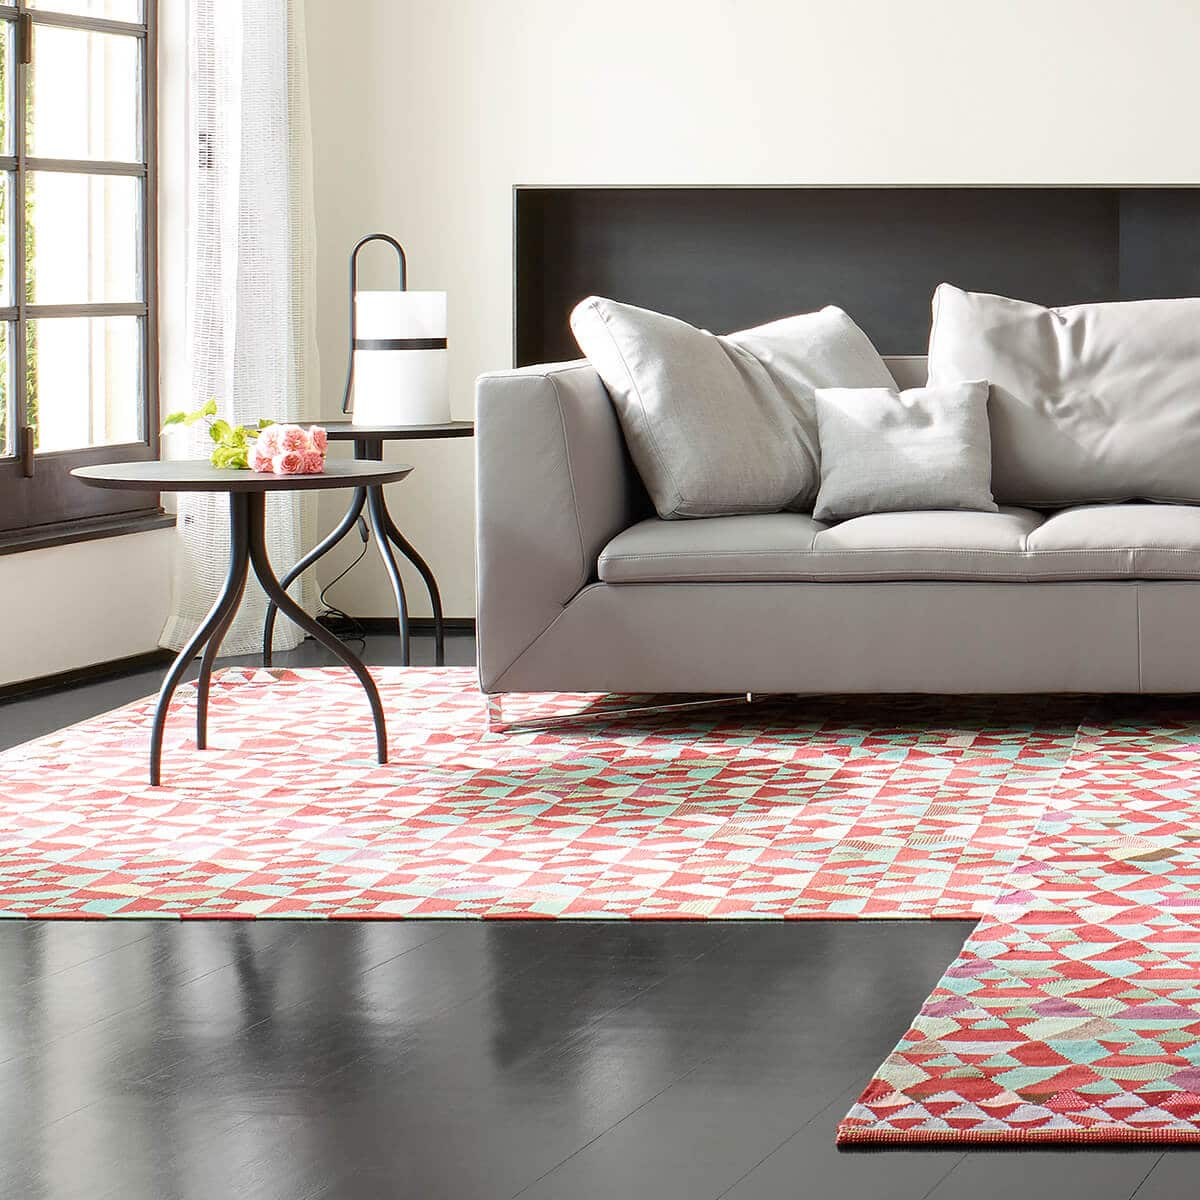 tapis hex hex ligne roset pas cher grandes marques en promo sur zeeloft. Black Bedroom Furniture Sets. Home Design Ideas